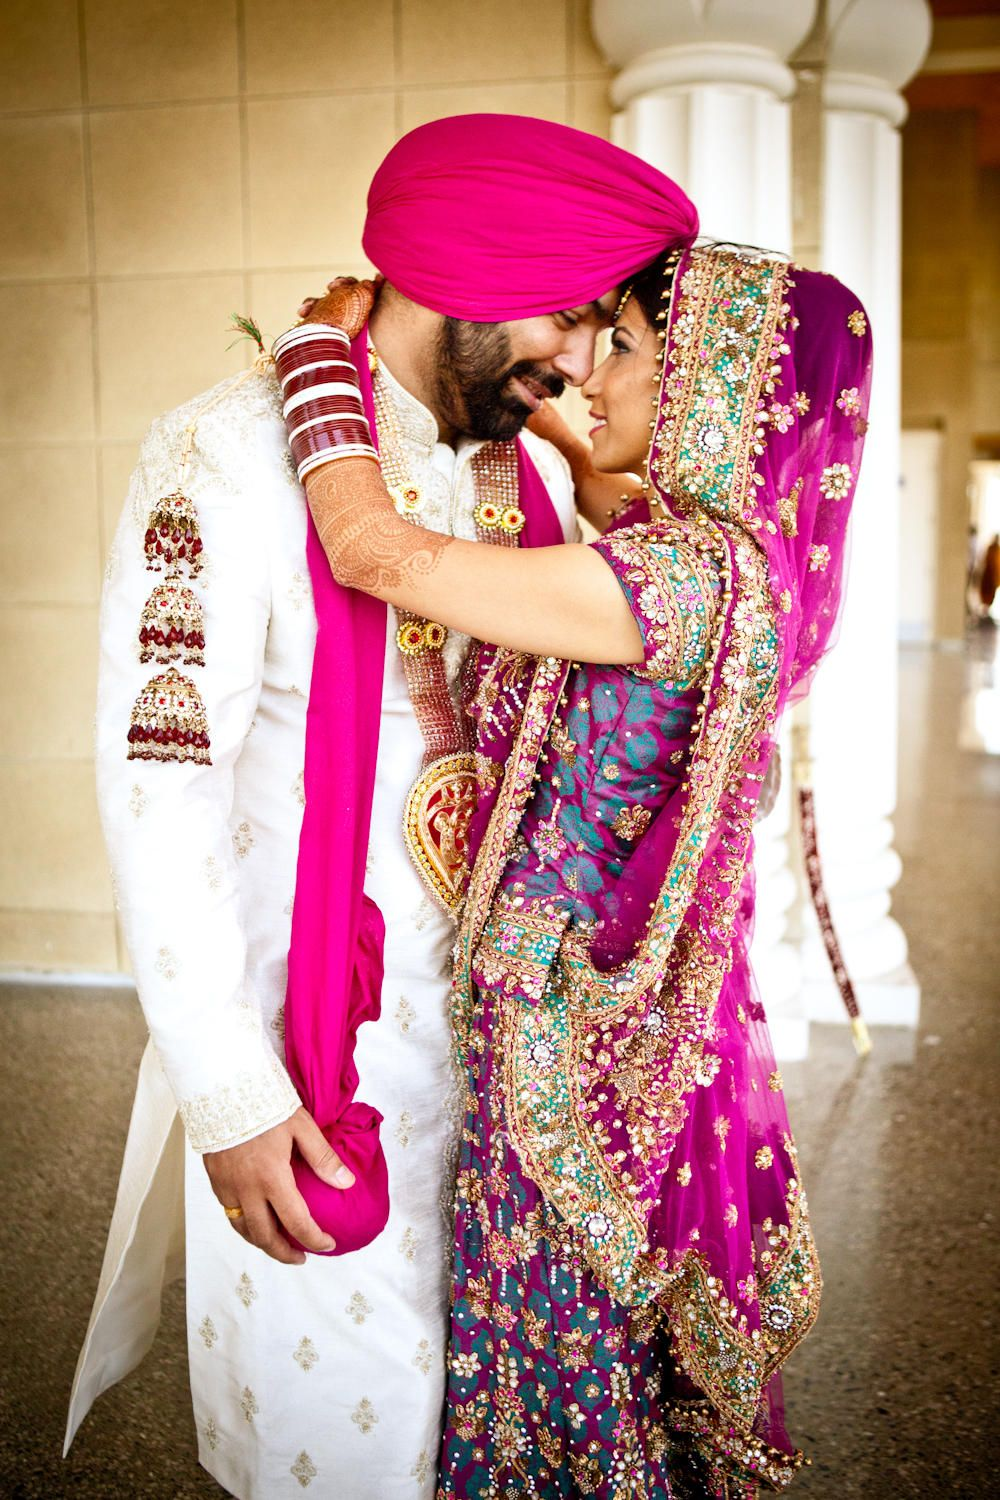 wedding couple, punjabi wedding, pink outfit | Photography ...